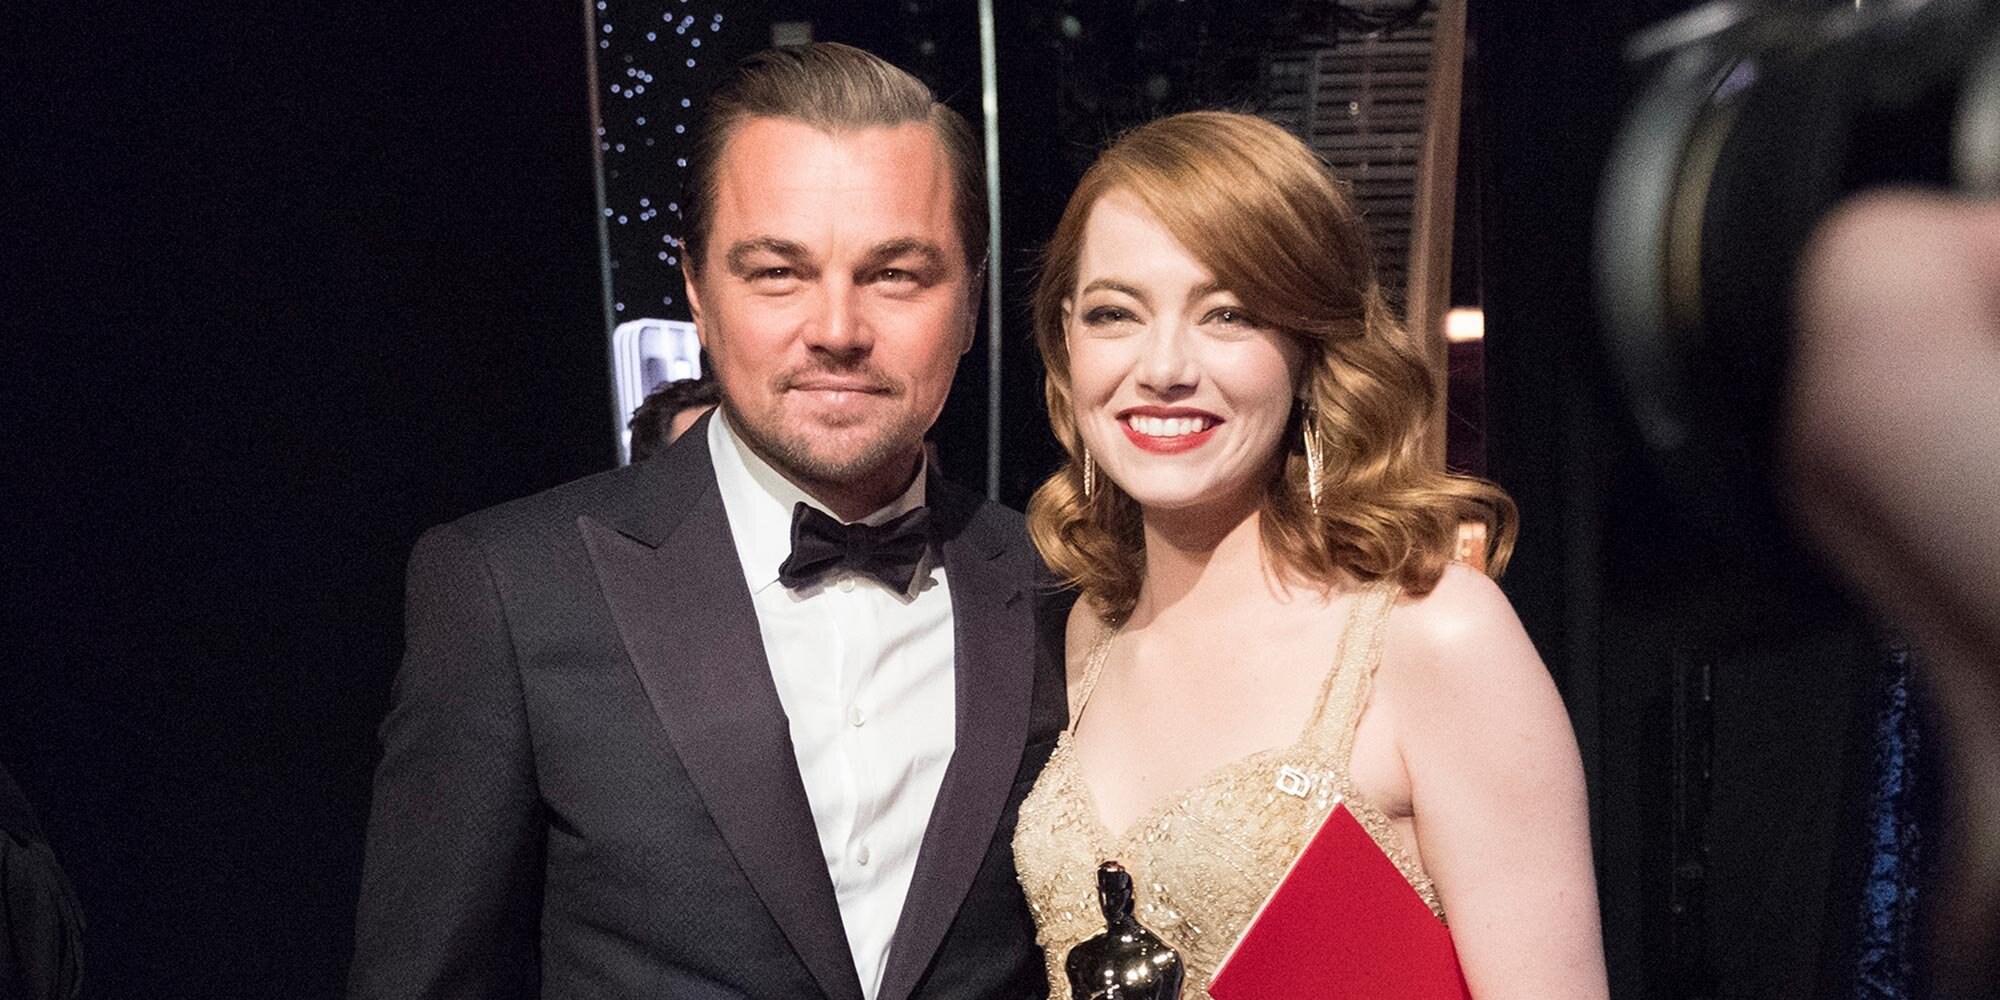 Emma Stone gushes about getting her Oscar from childhood crush Leonardo DiCaprio